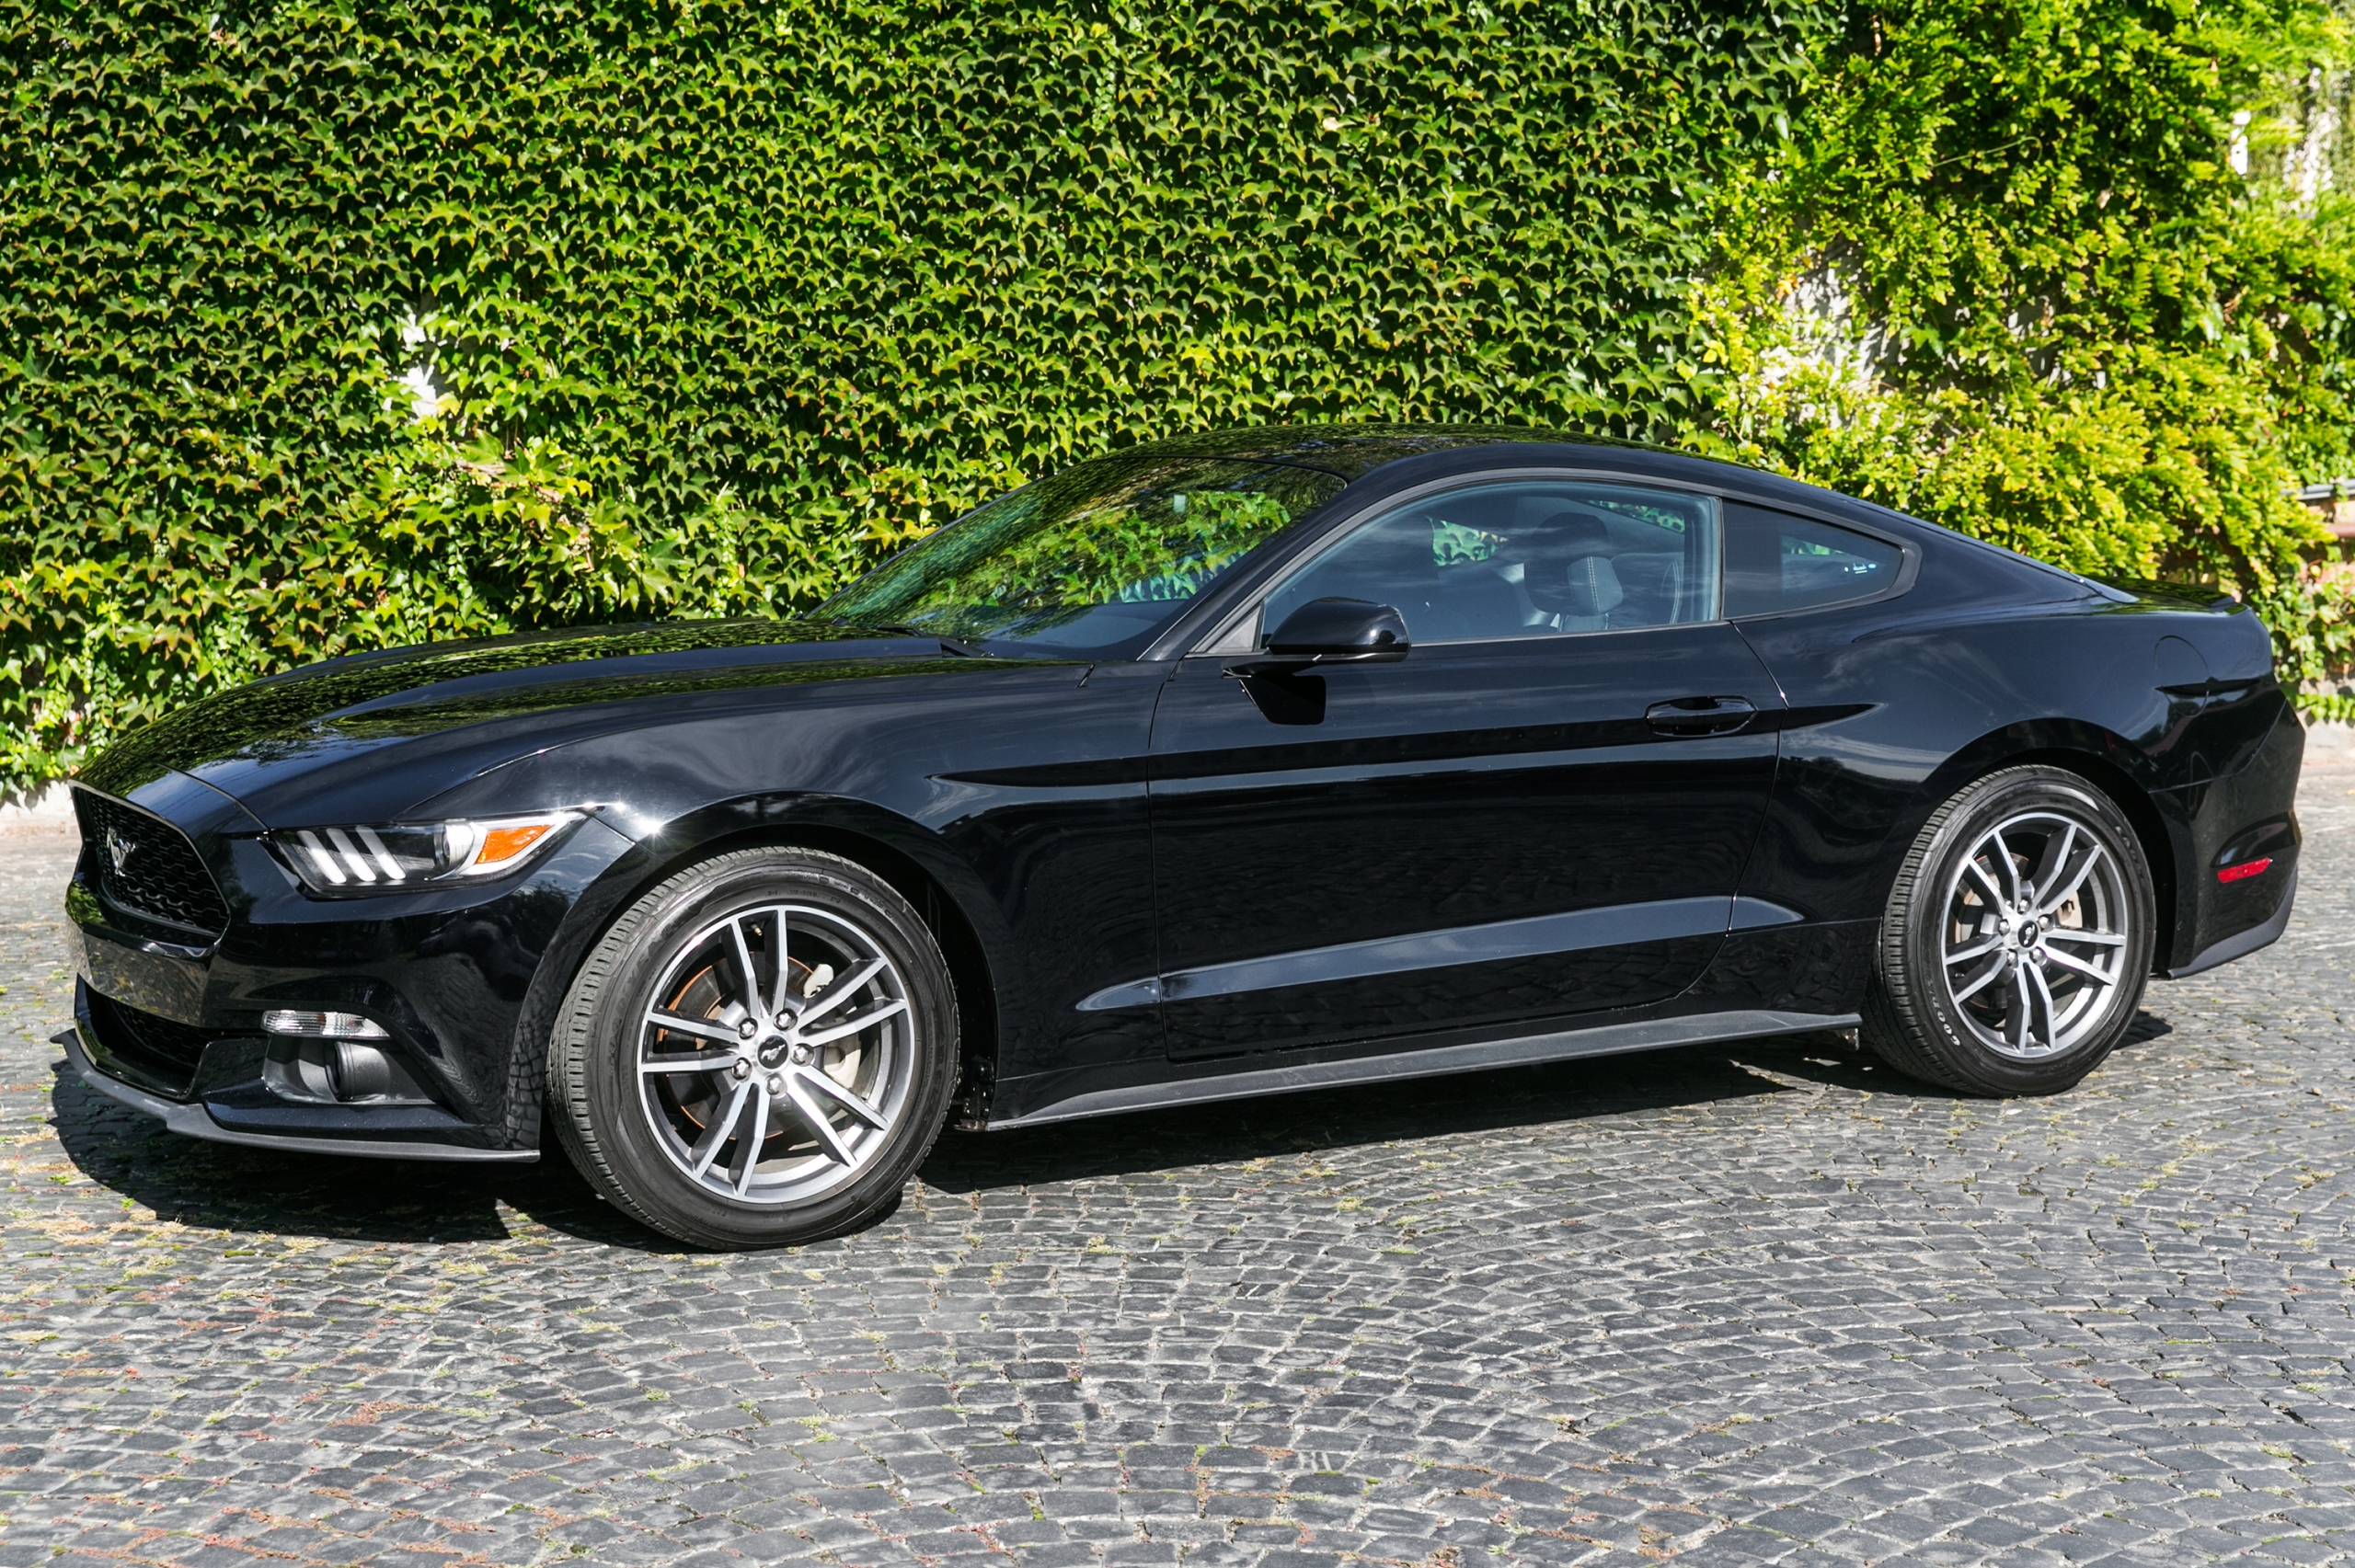 Ford Mustang 2.3 Ecoboost 2016 Specs